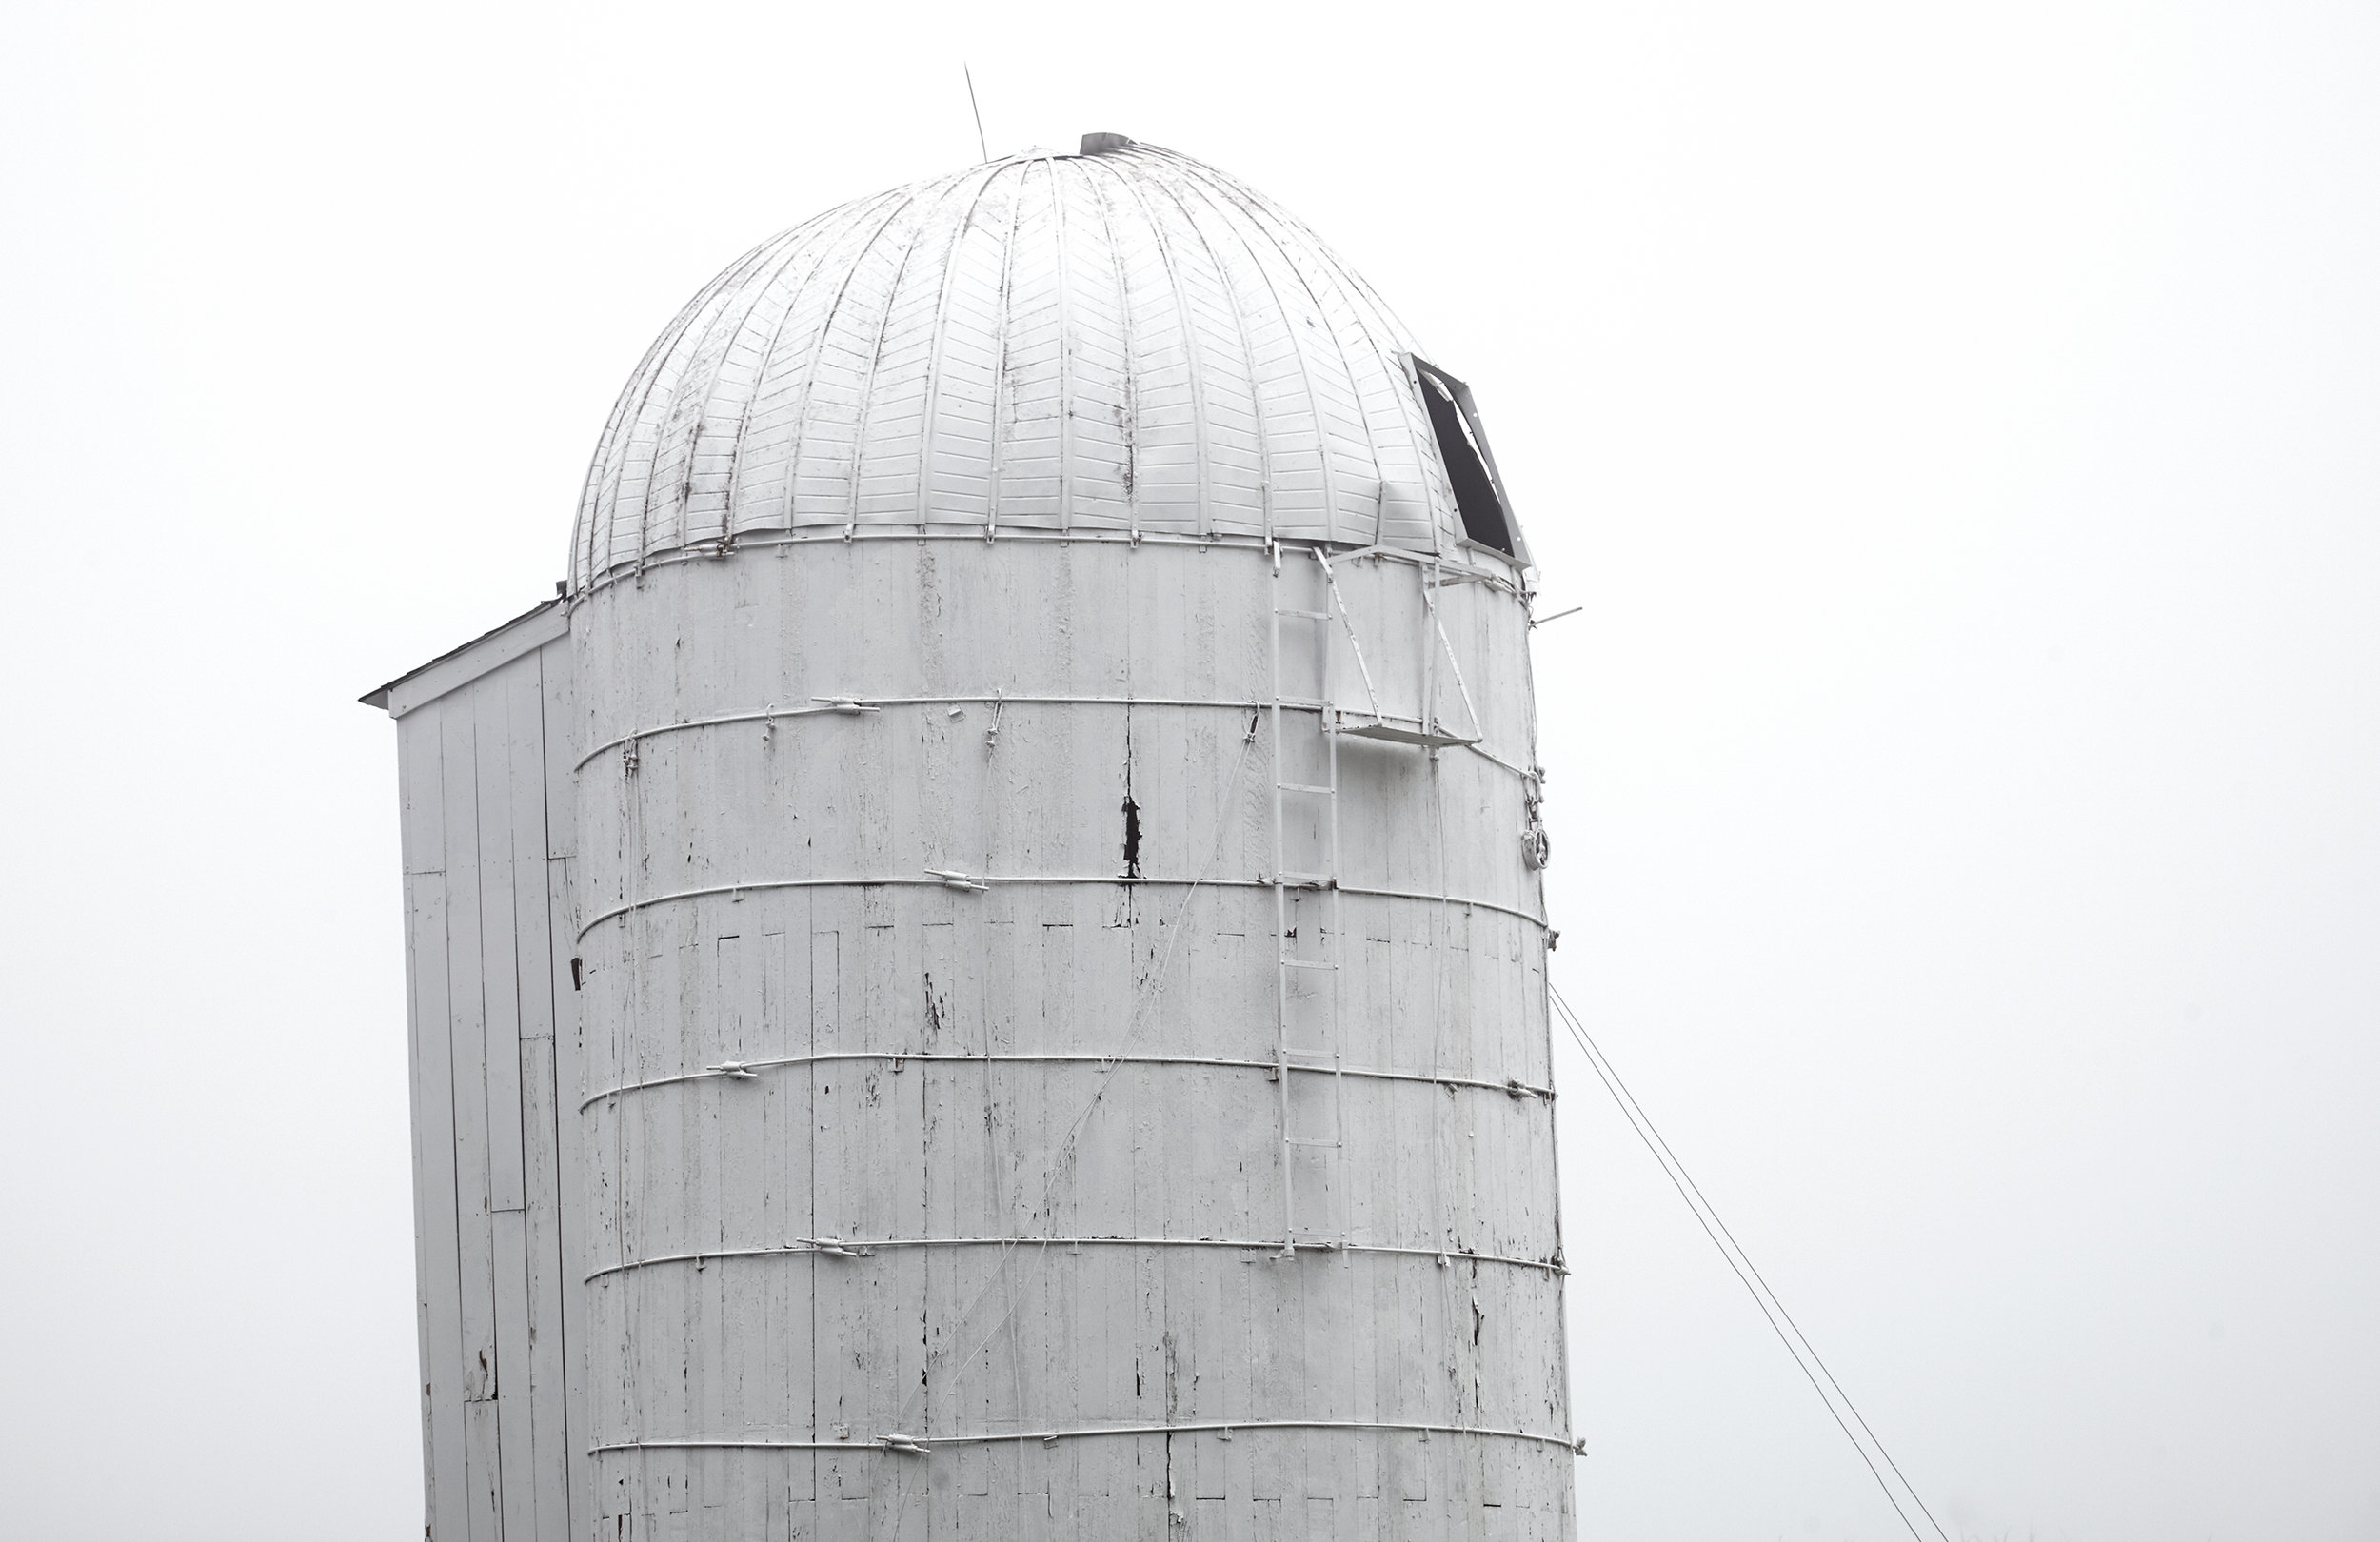 WHITE-SILO-NEW-ENGLAND-FARM-LANDSCAPE-©-JONATHAN-R.-BECKERMAN-PHOTOGRAPHY.jpg